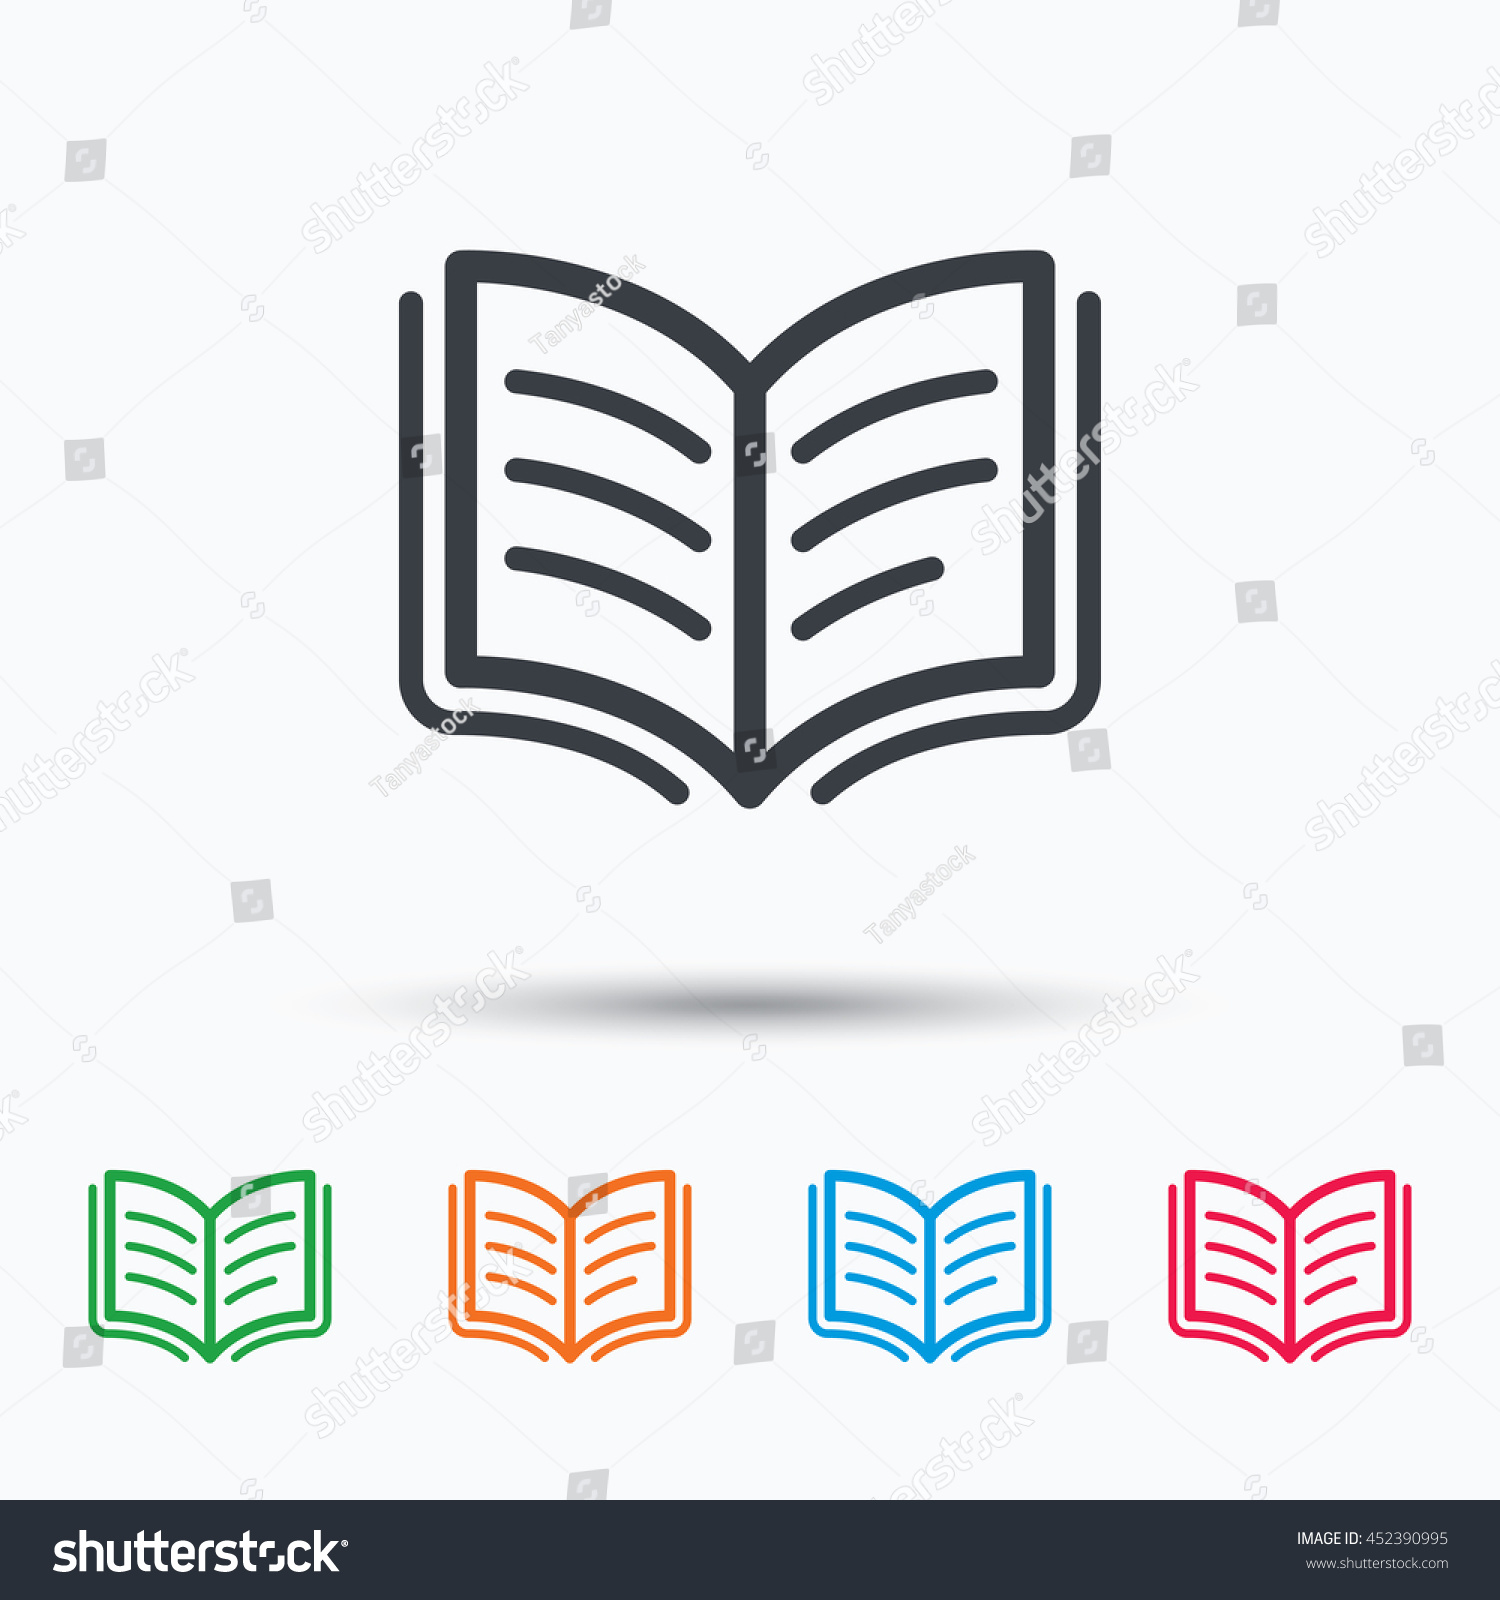 book icon study literature sign education stock vector 452390995 study literature sign education textbook symbol colored flat web icon on